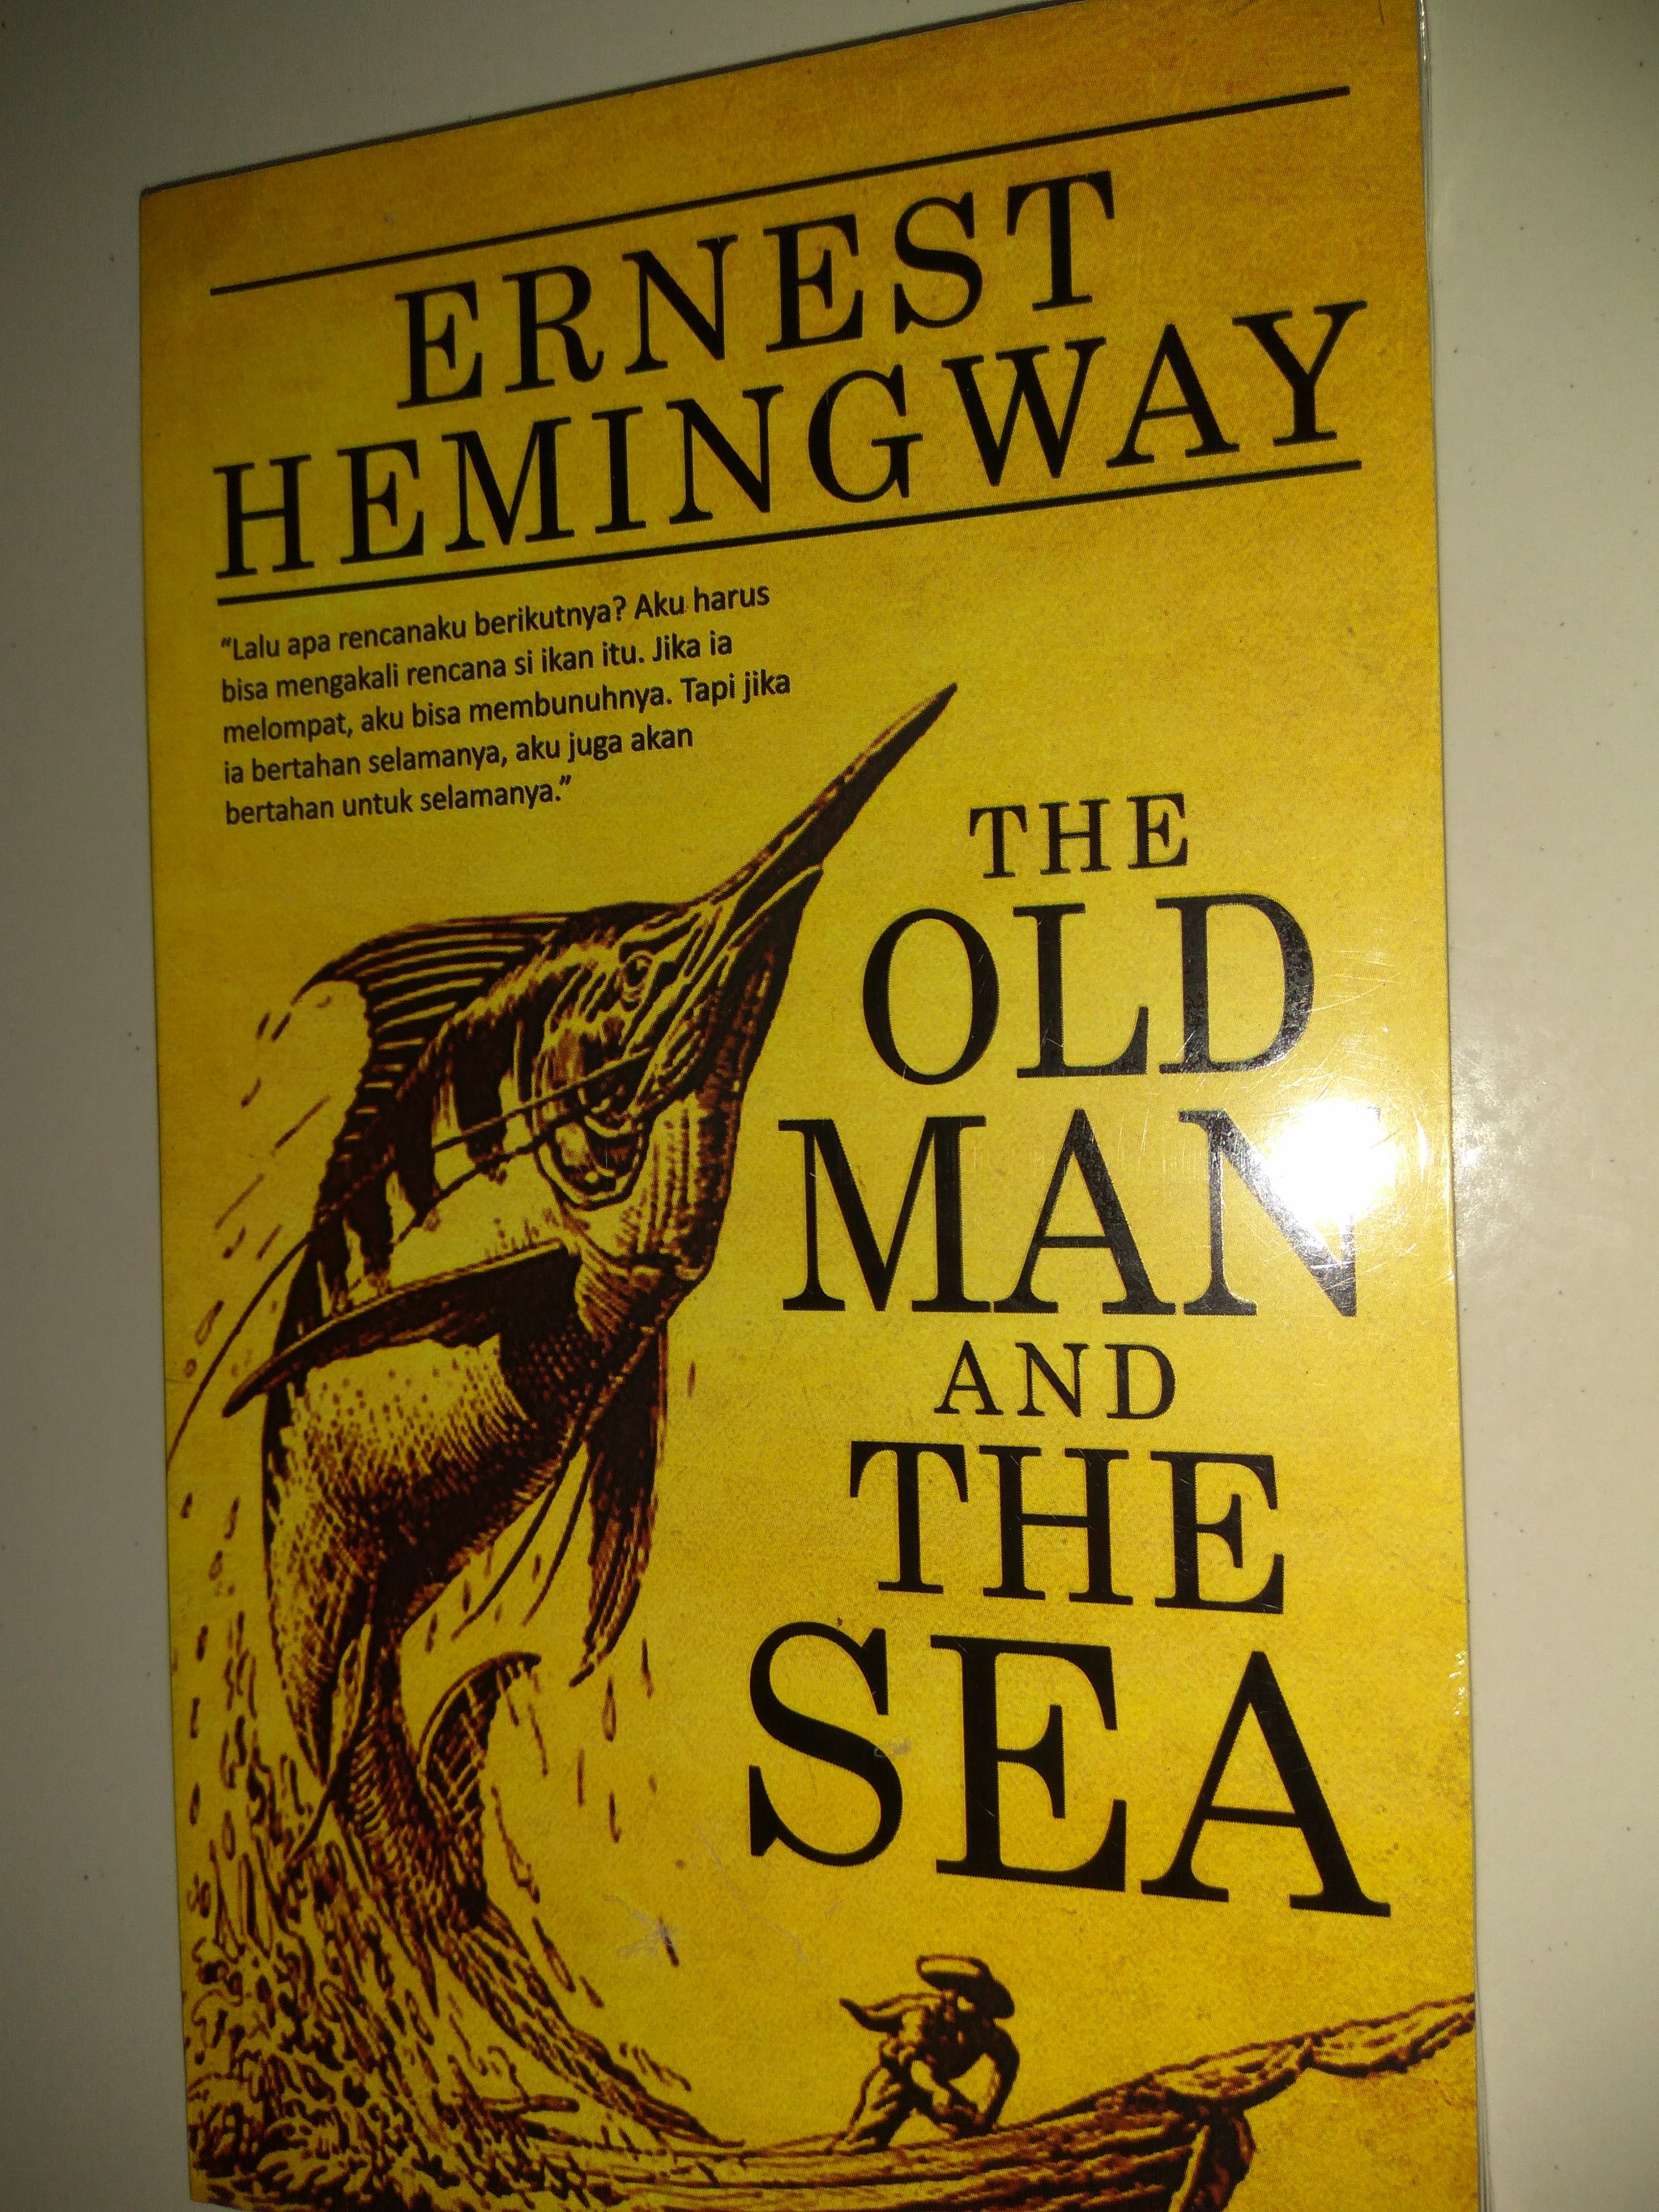 the christ like character in ernest hemingways the old man and the sea Free essay: ernest hemingway's the old man and the sea the old devotion to jesus christ old man and the sea 1297 words | 6 pages the character.